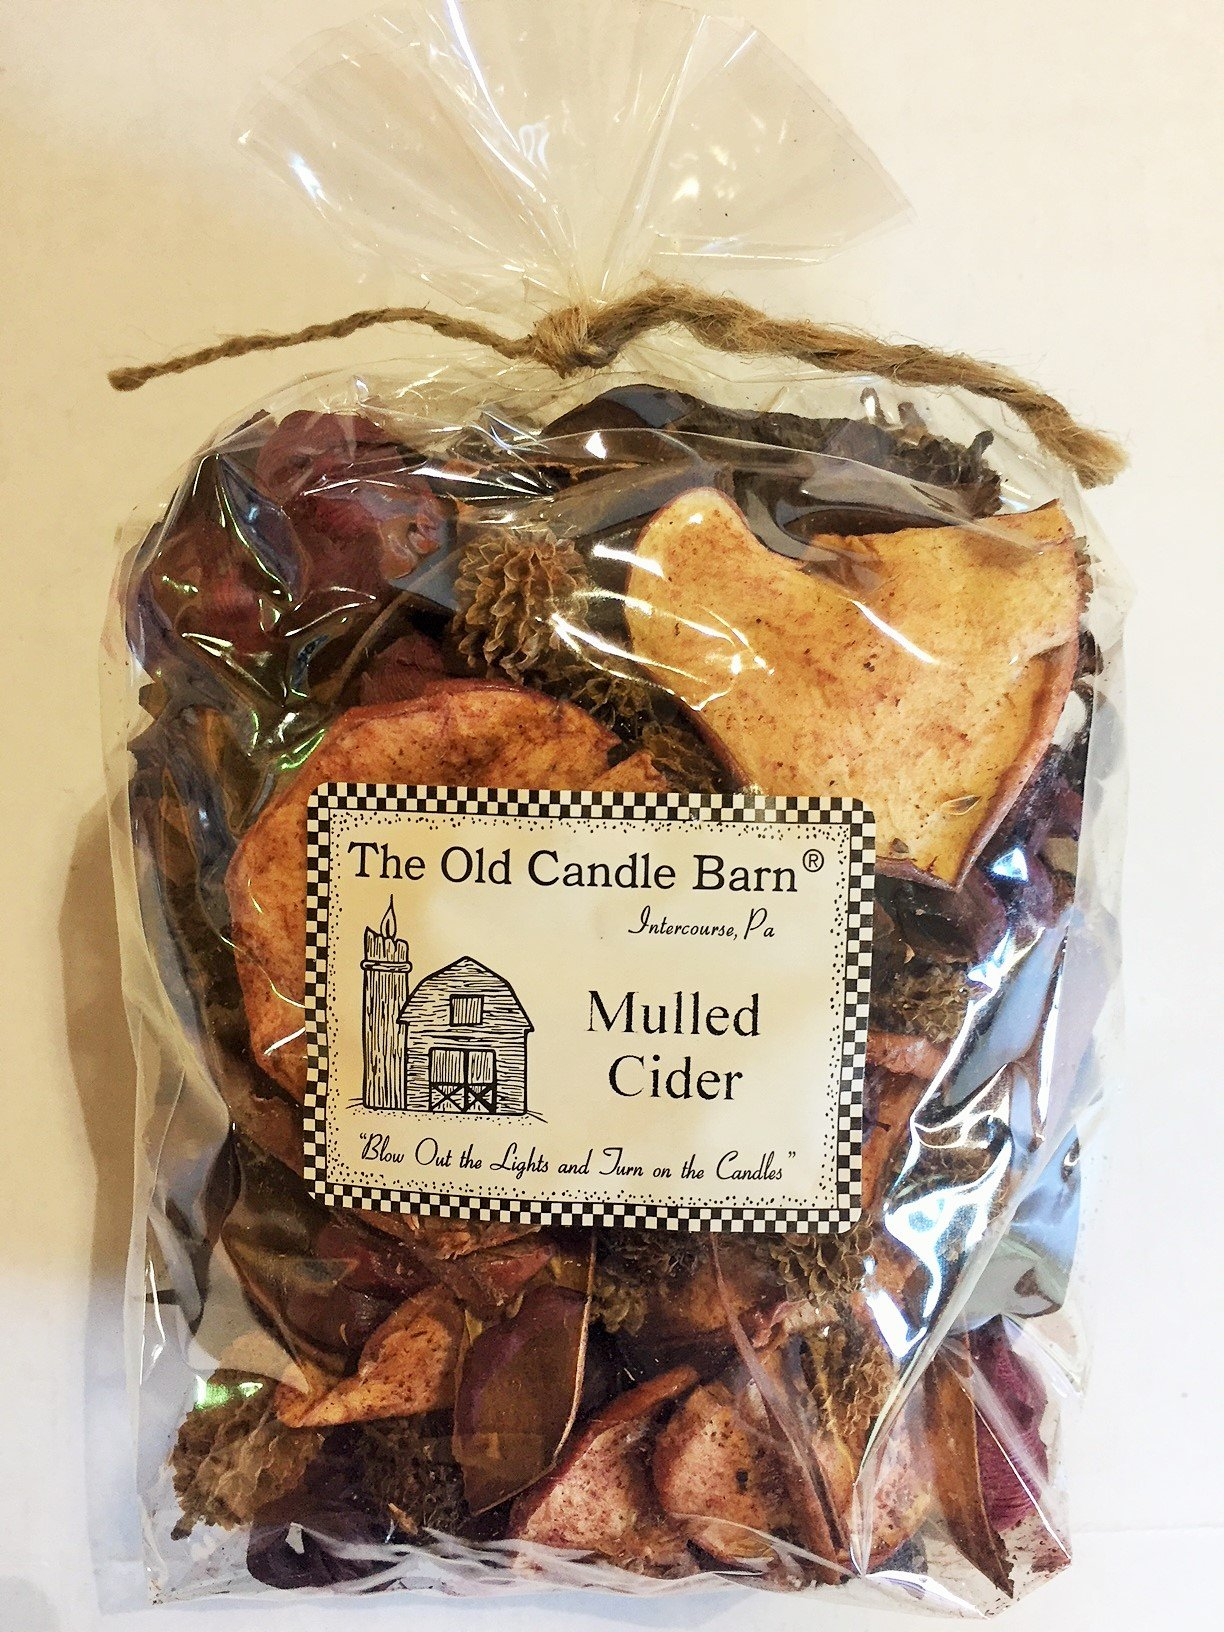 Mulled Cider Potpourri Large Bag - Perfect Fall Decoration or Bowl Filler - Beautiful Autumn Apple Scent by Old Candle Barn